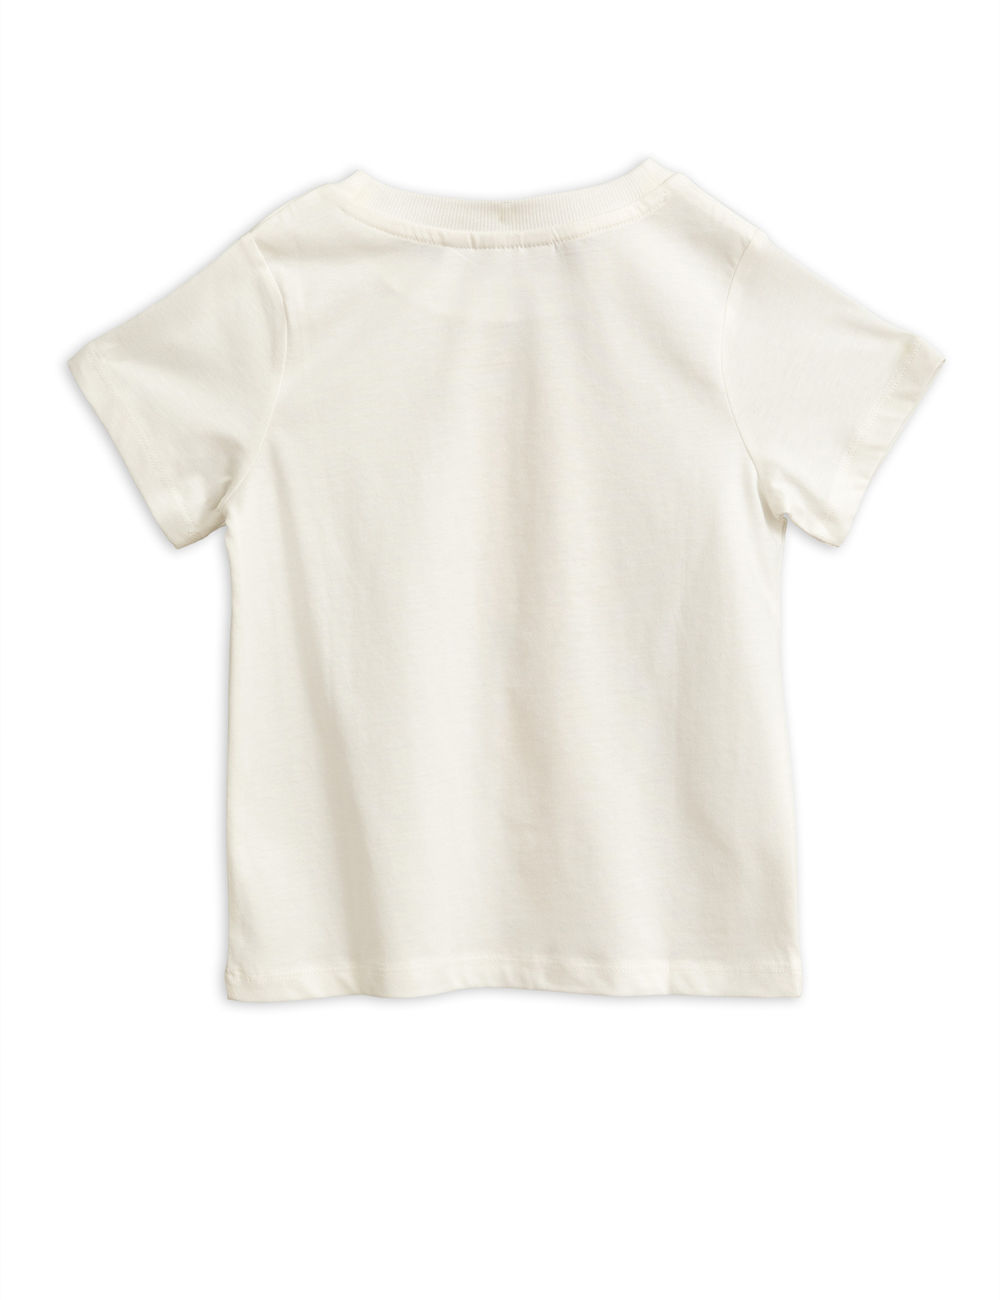 MINI RODINI PARROT SP SS TEE,  WHITE